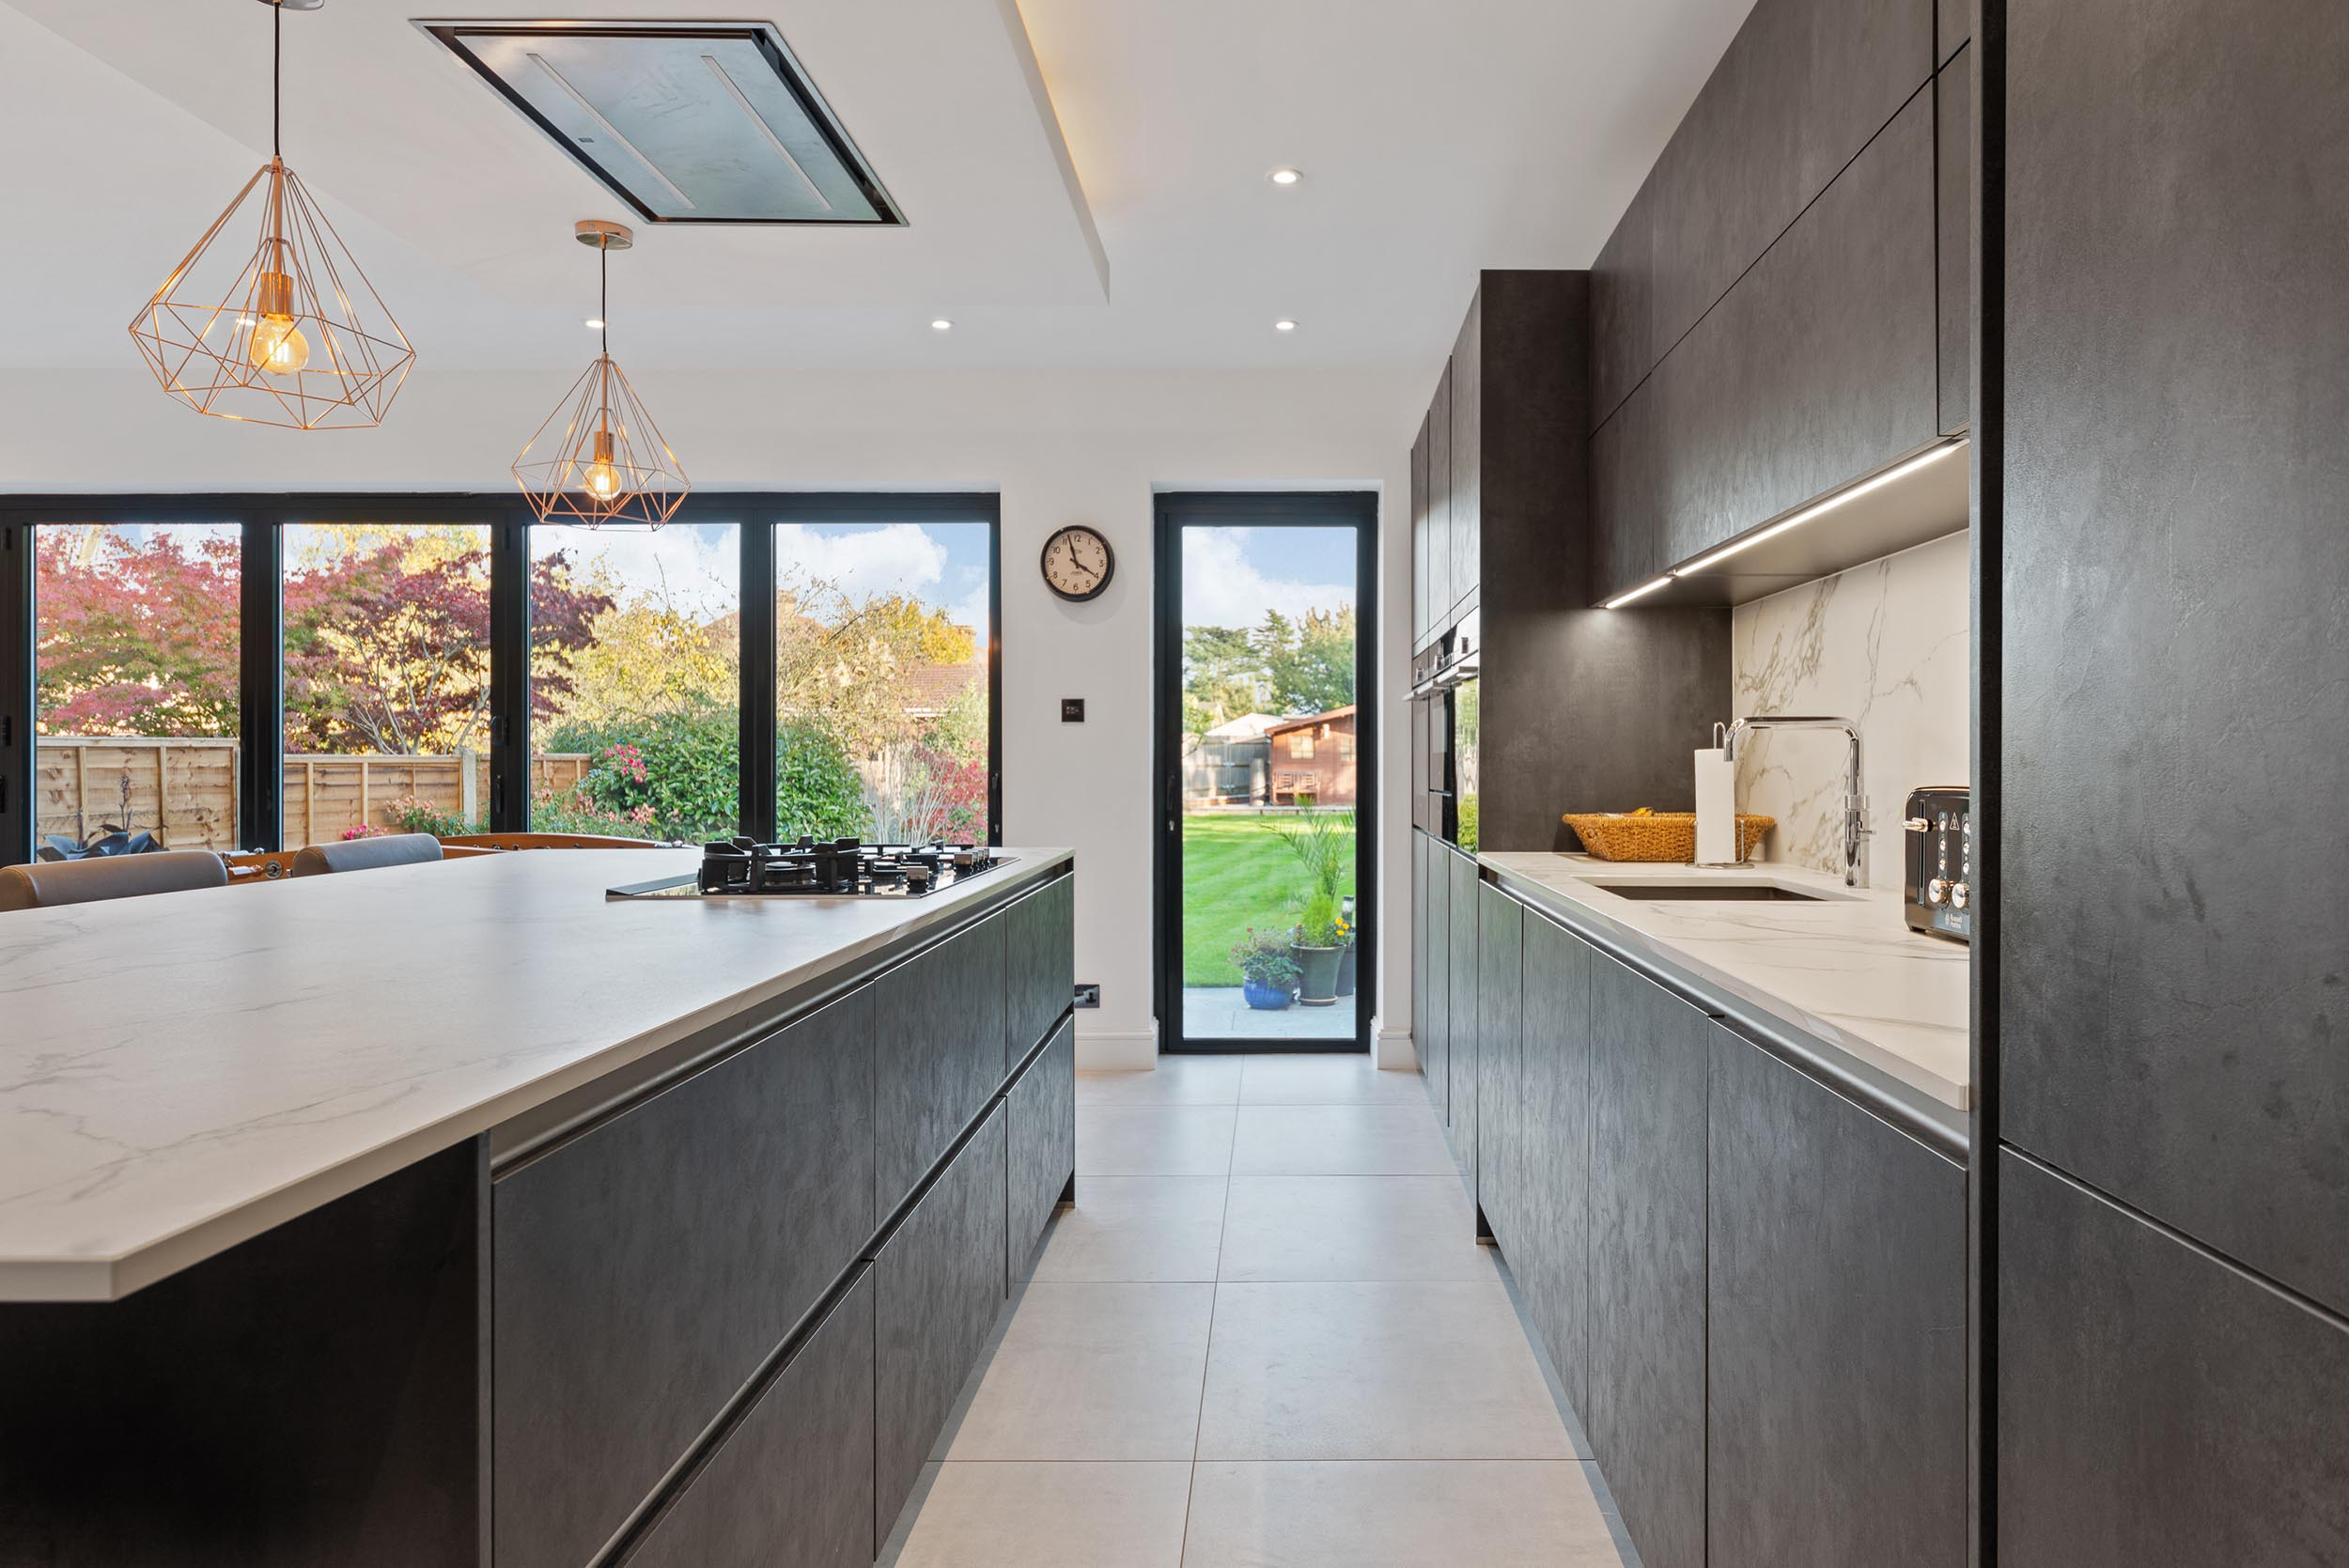 61-and-63-Wades-Hill-N21-1BD-Small-Res-14